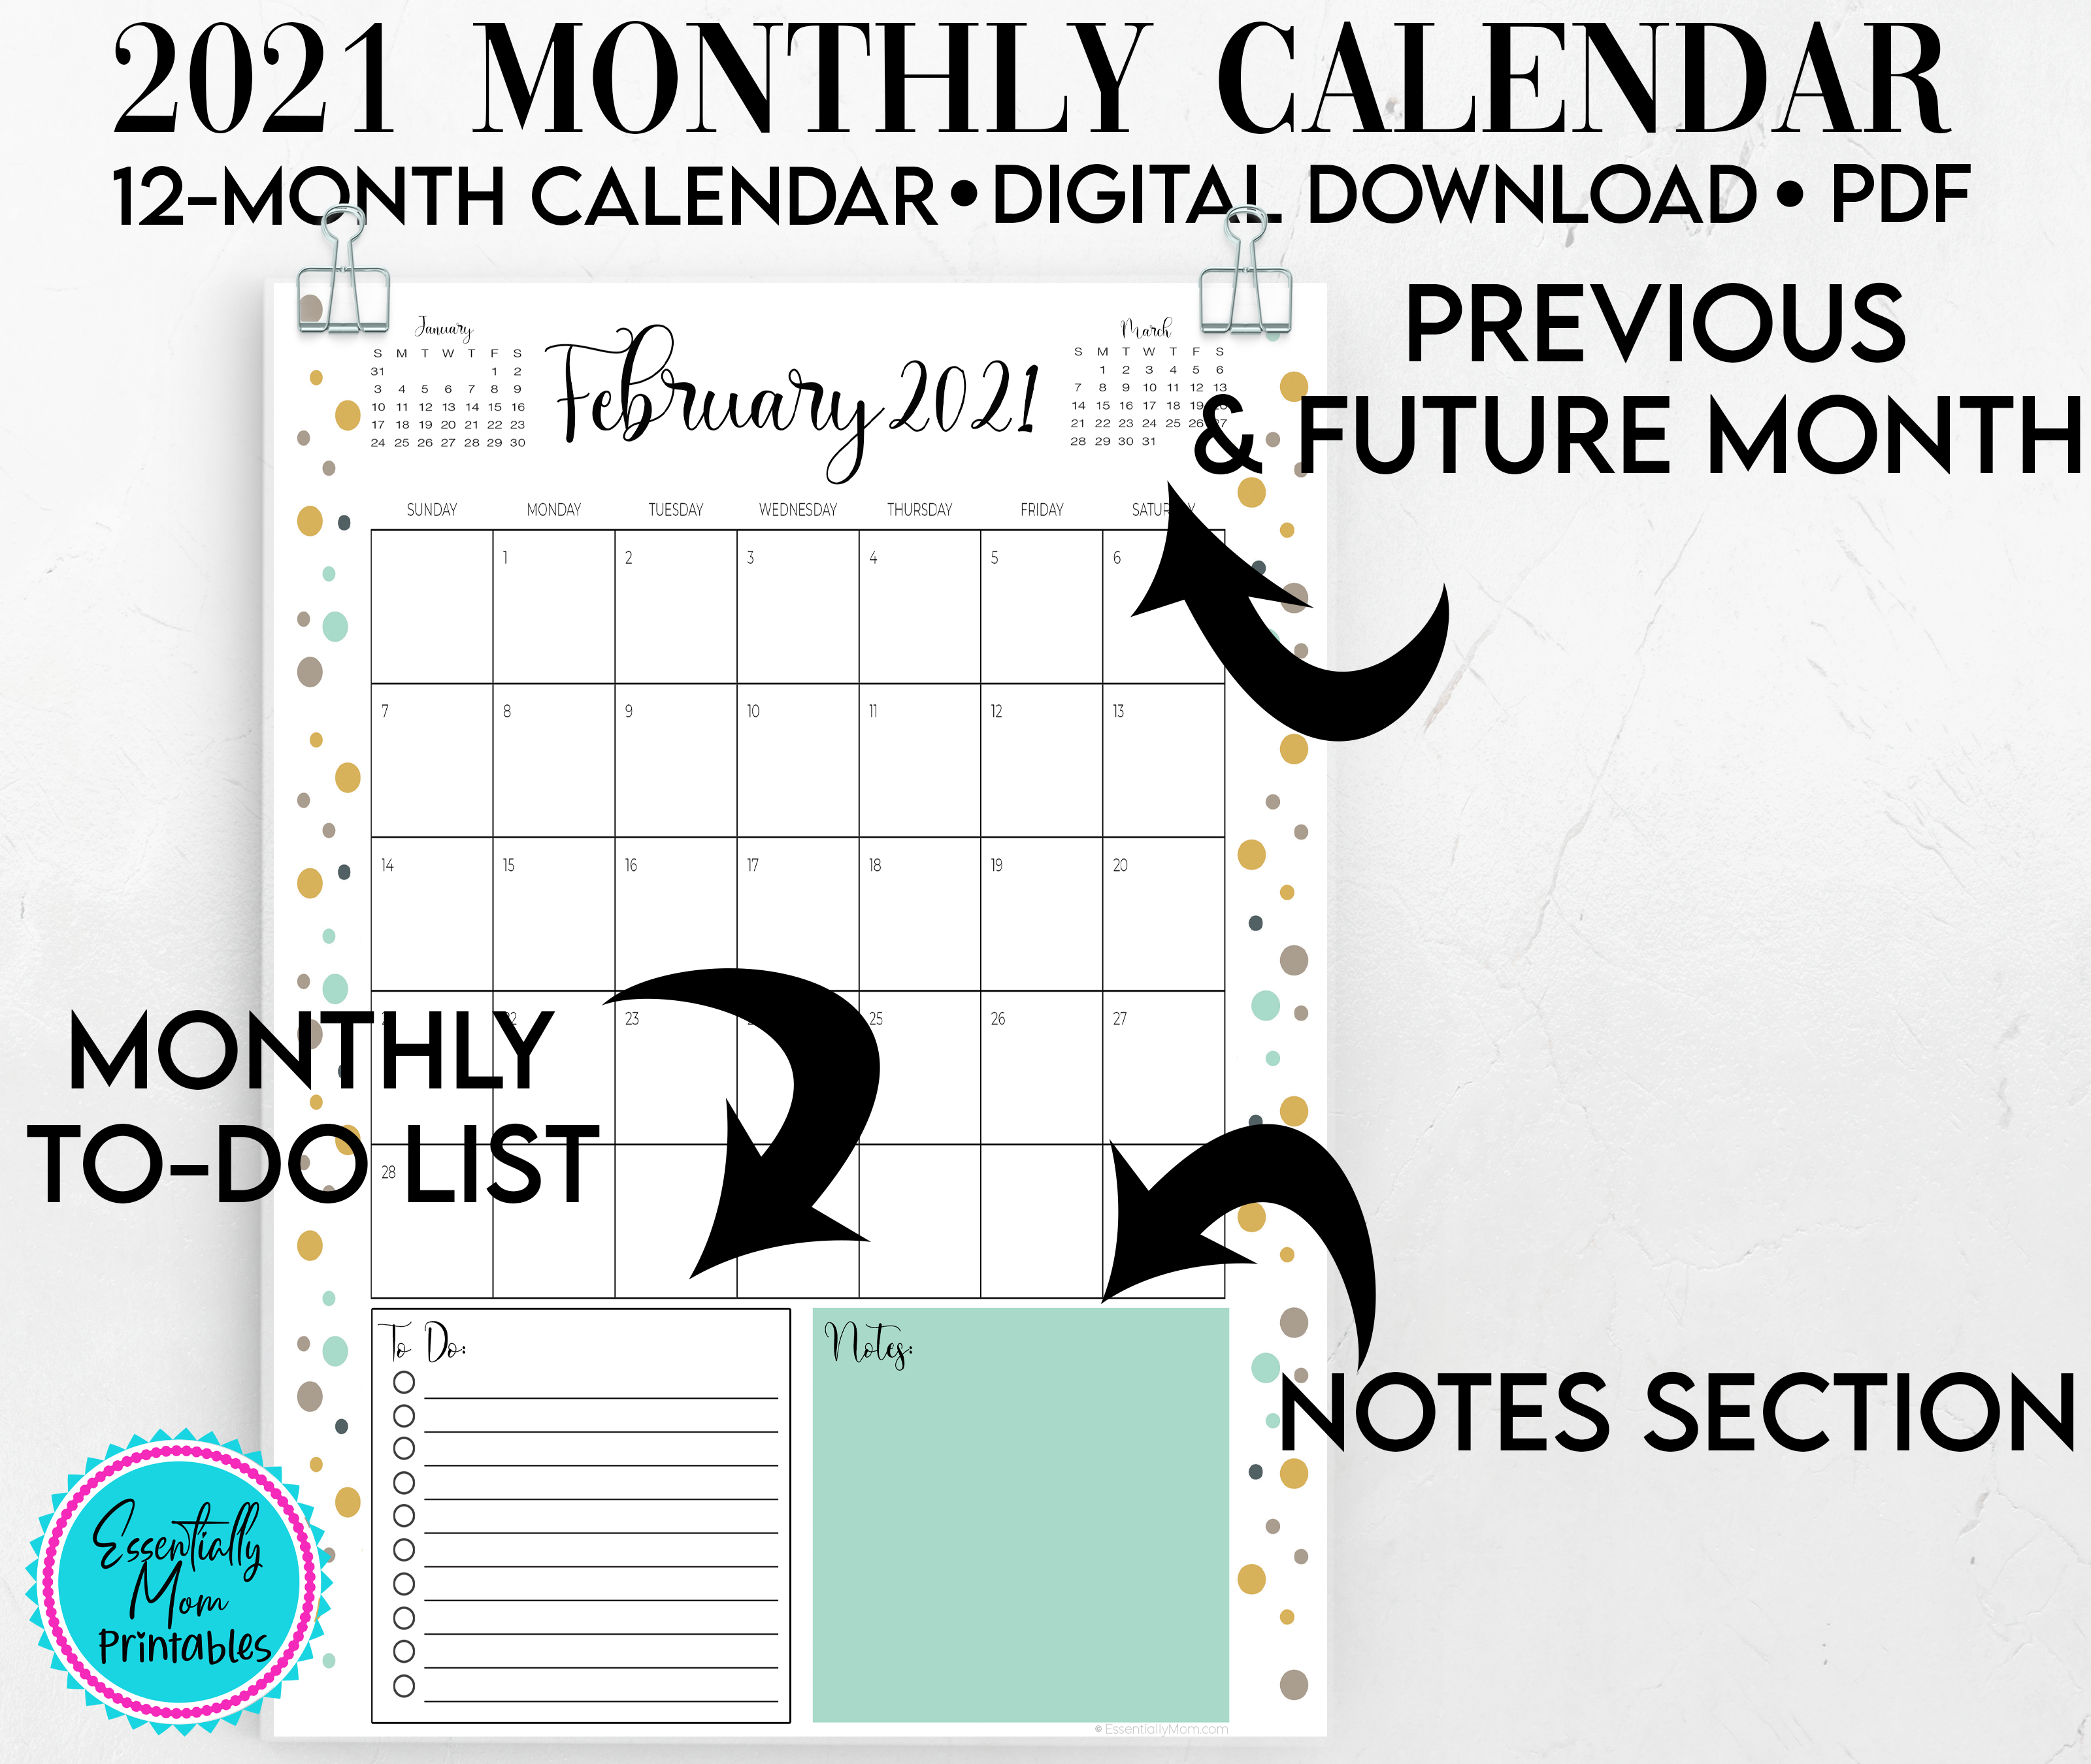 printable 2021 calendars,monthly calendar with to do list,monthly calendar with notes,monthly calendar print out,cute printable monthly calendar 2020